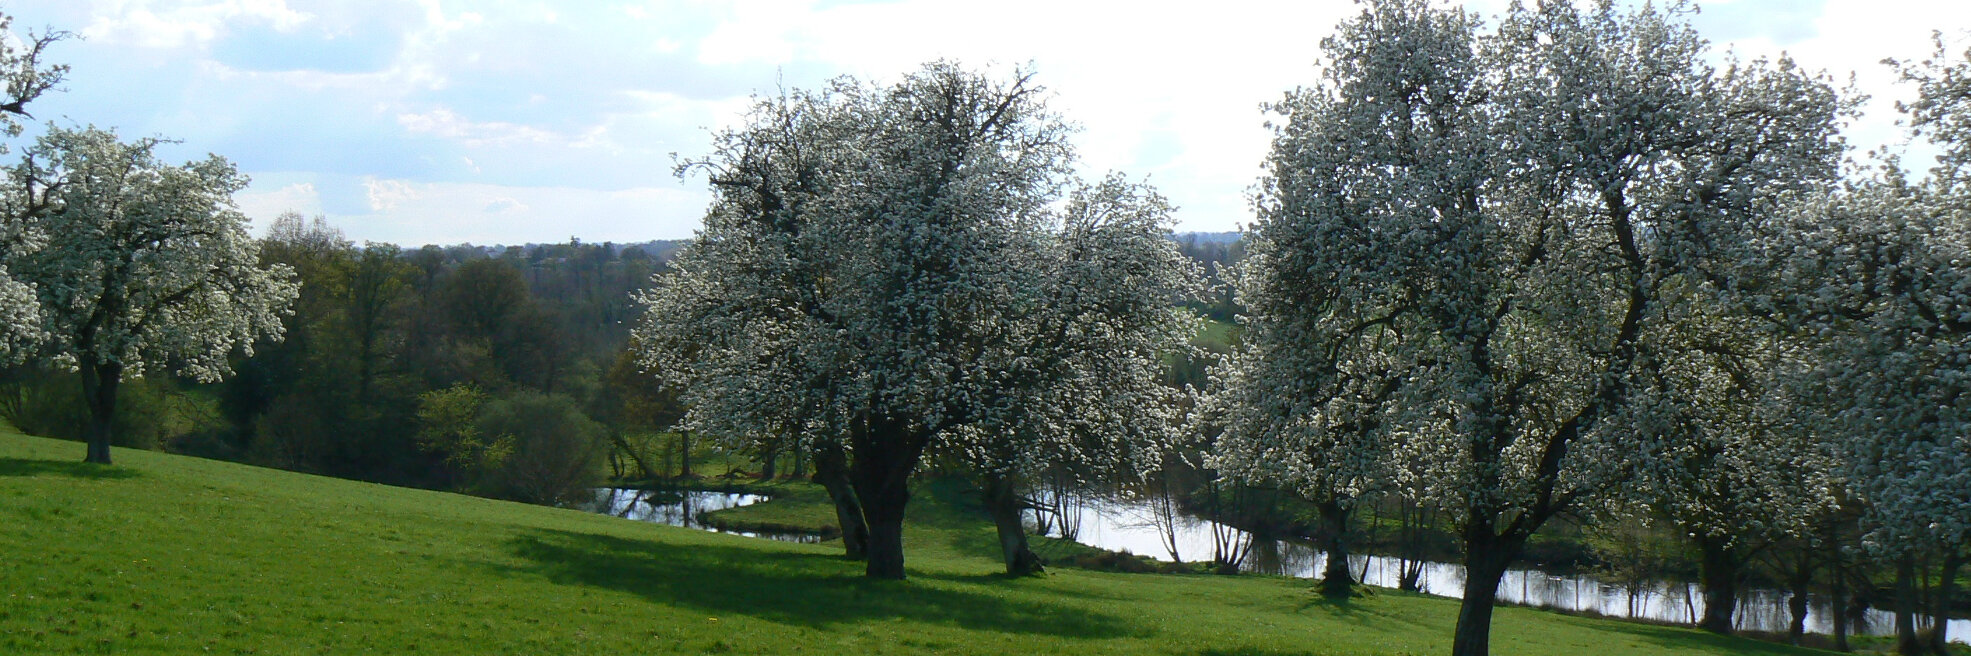 photo of a large grassy area leading down to a river surrounded by trees in blossom